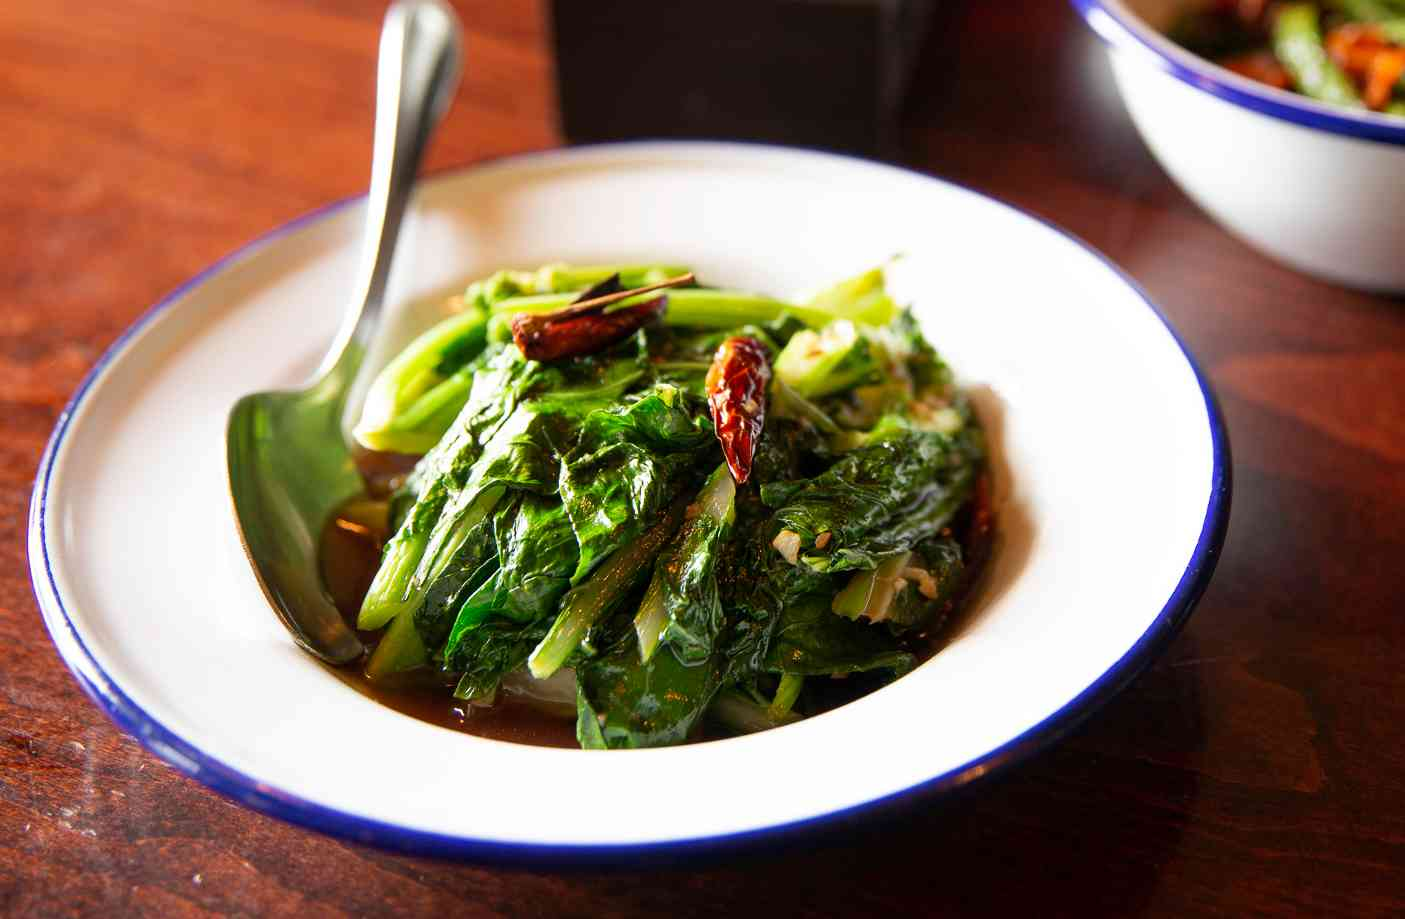 Chinese Broccoli and Roasted Red Chili